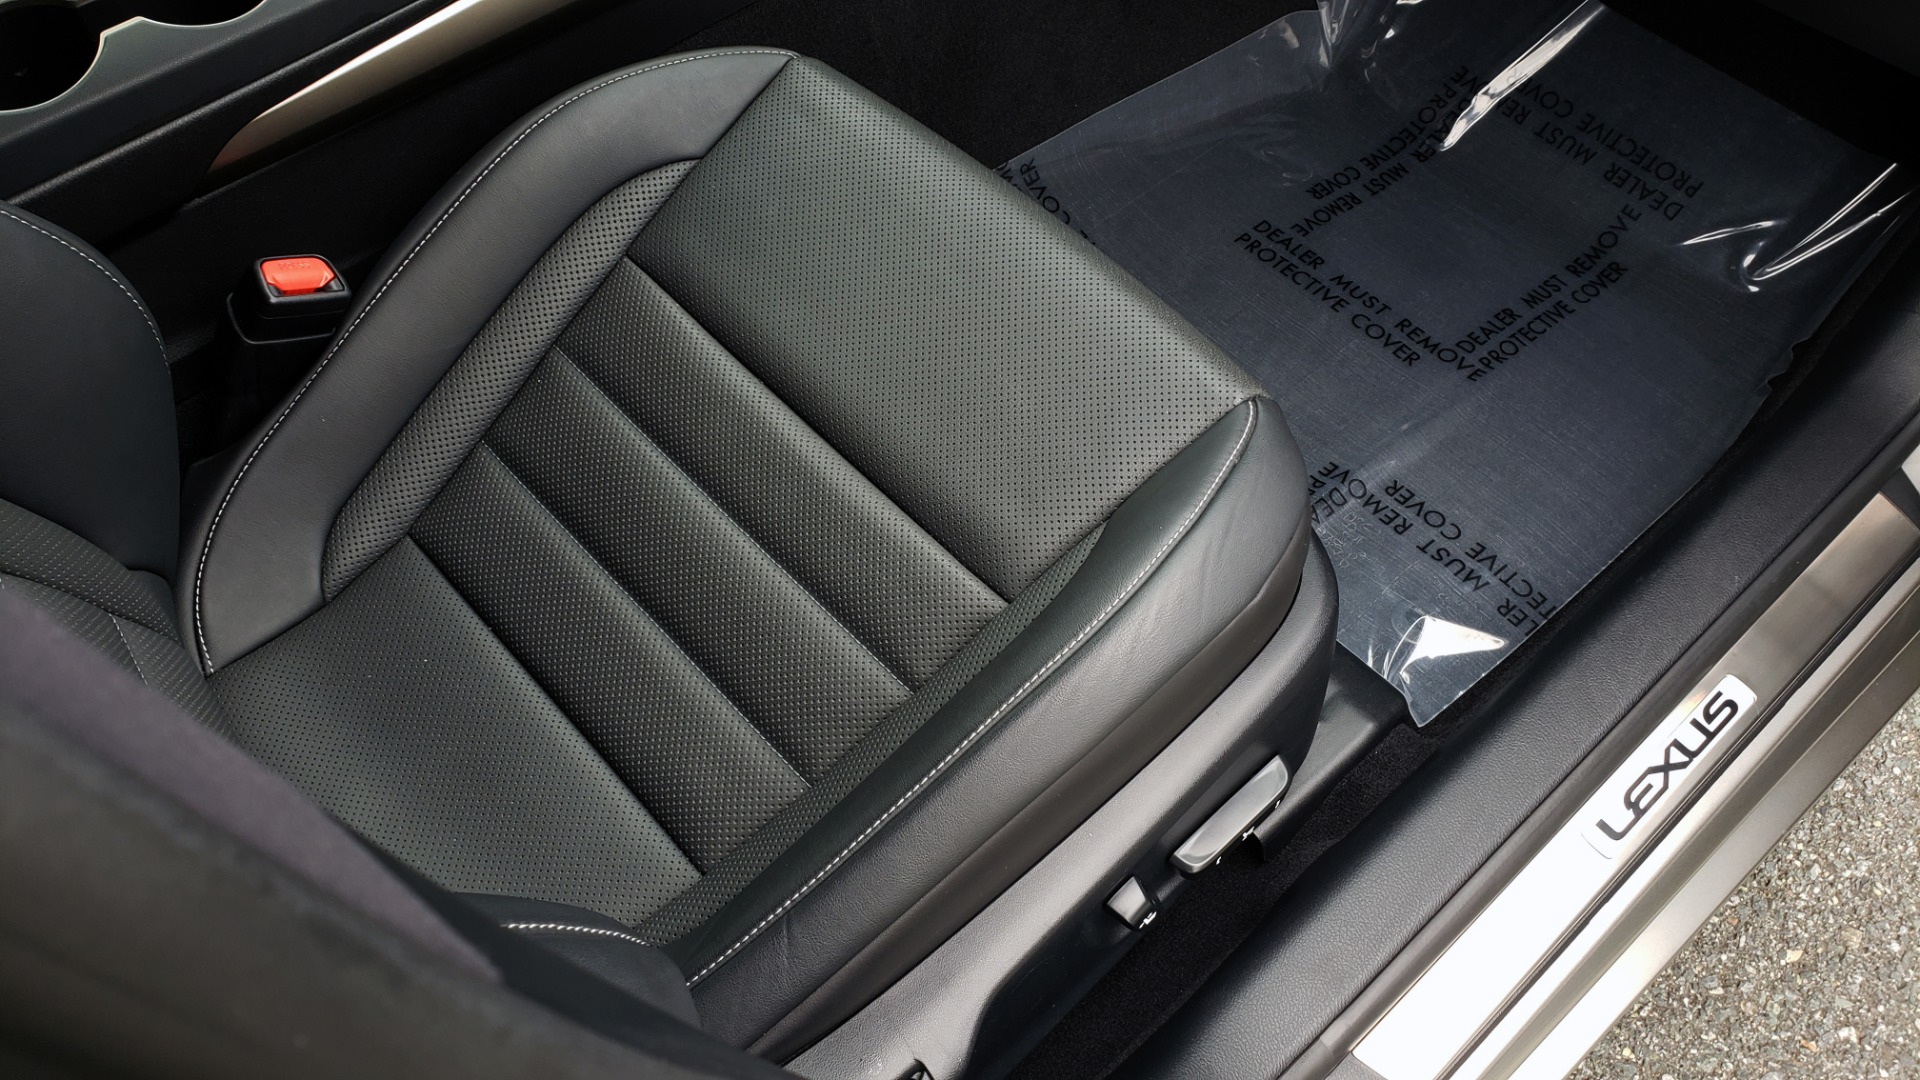 Used 2017 Lexus IS 200 TURBO F-SPORT / BSM / SUNROOF / VENT SEATS / REARVIEW for sale Sold at Formula Imports in Charlotte NC 28227 68